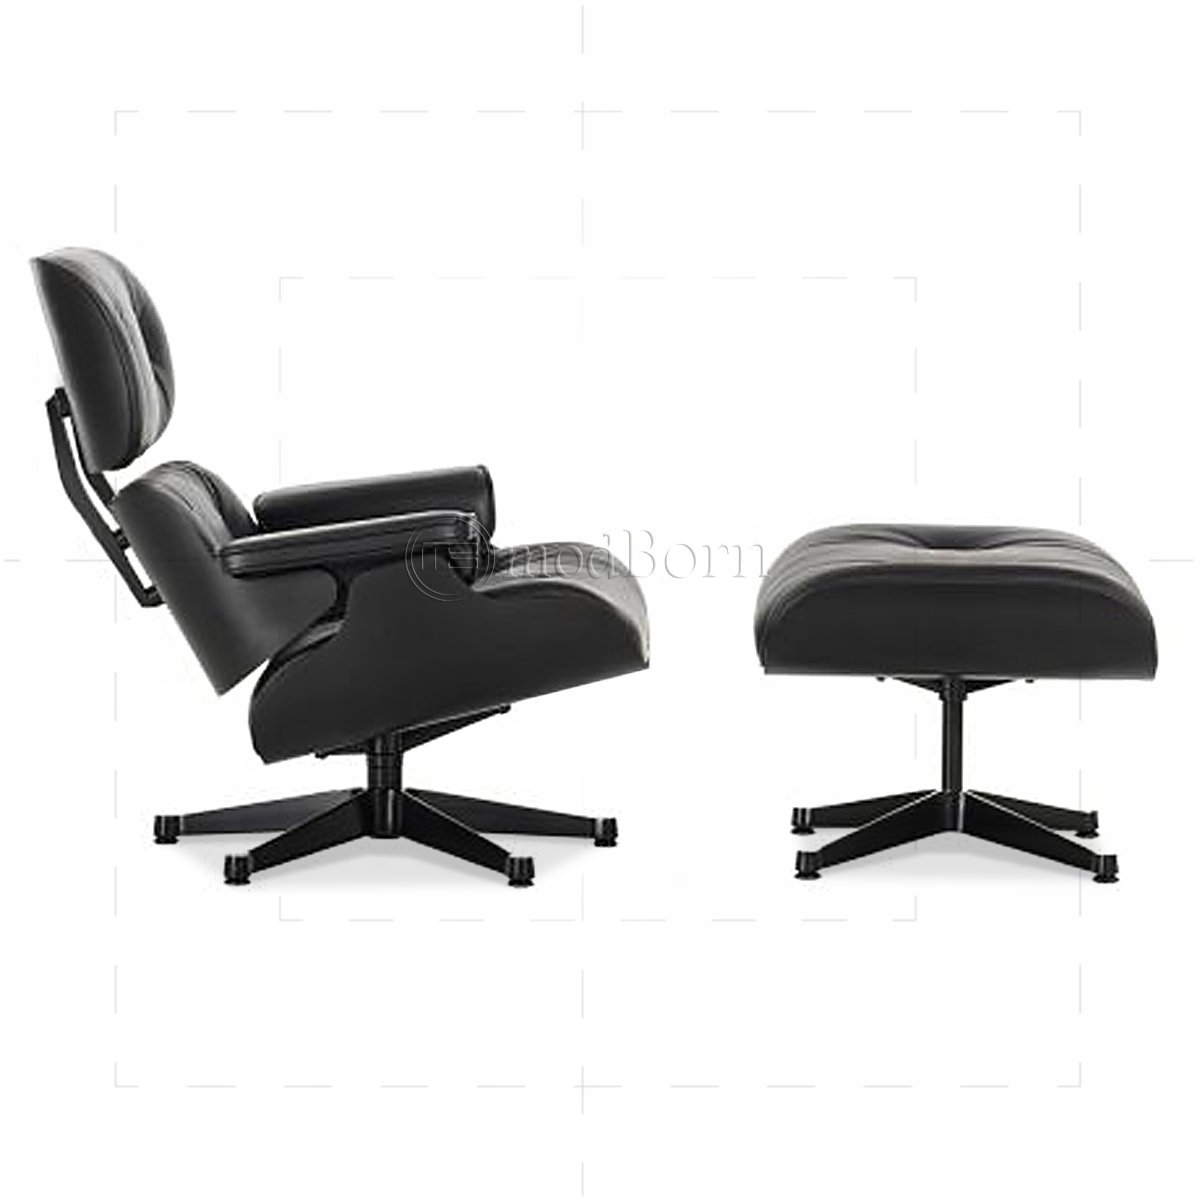 Eames style lounge chair and ottoman black leather black for Eames chair replica deutschland